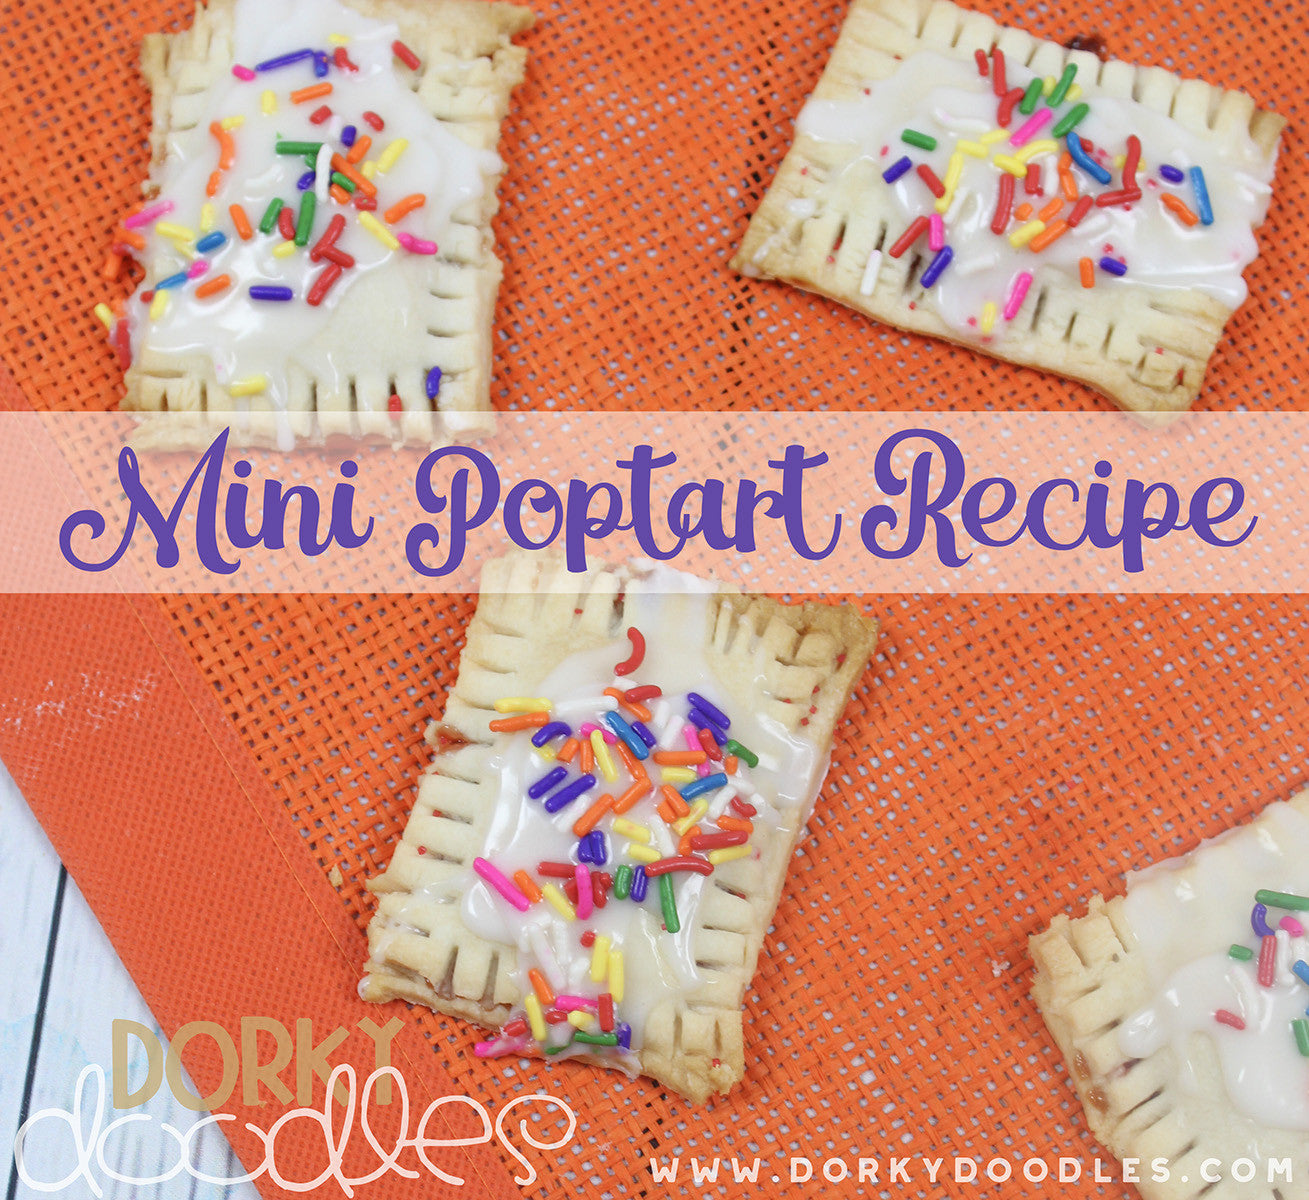 mini poptart recipe